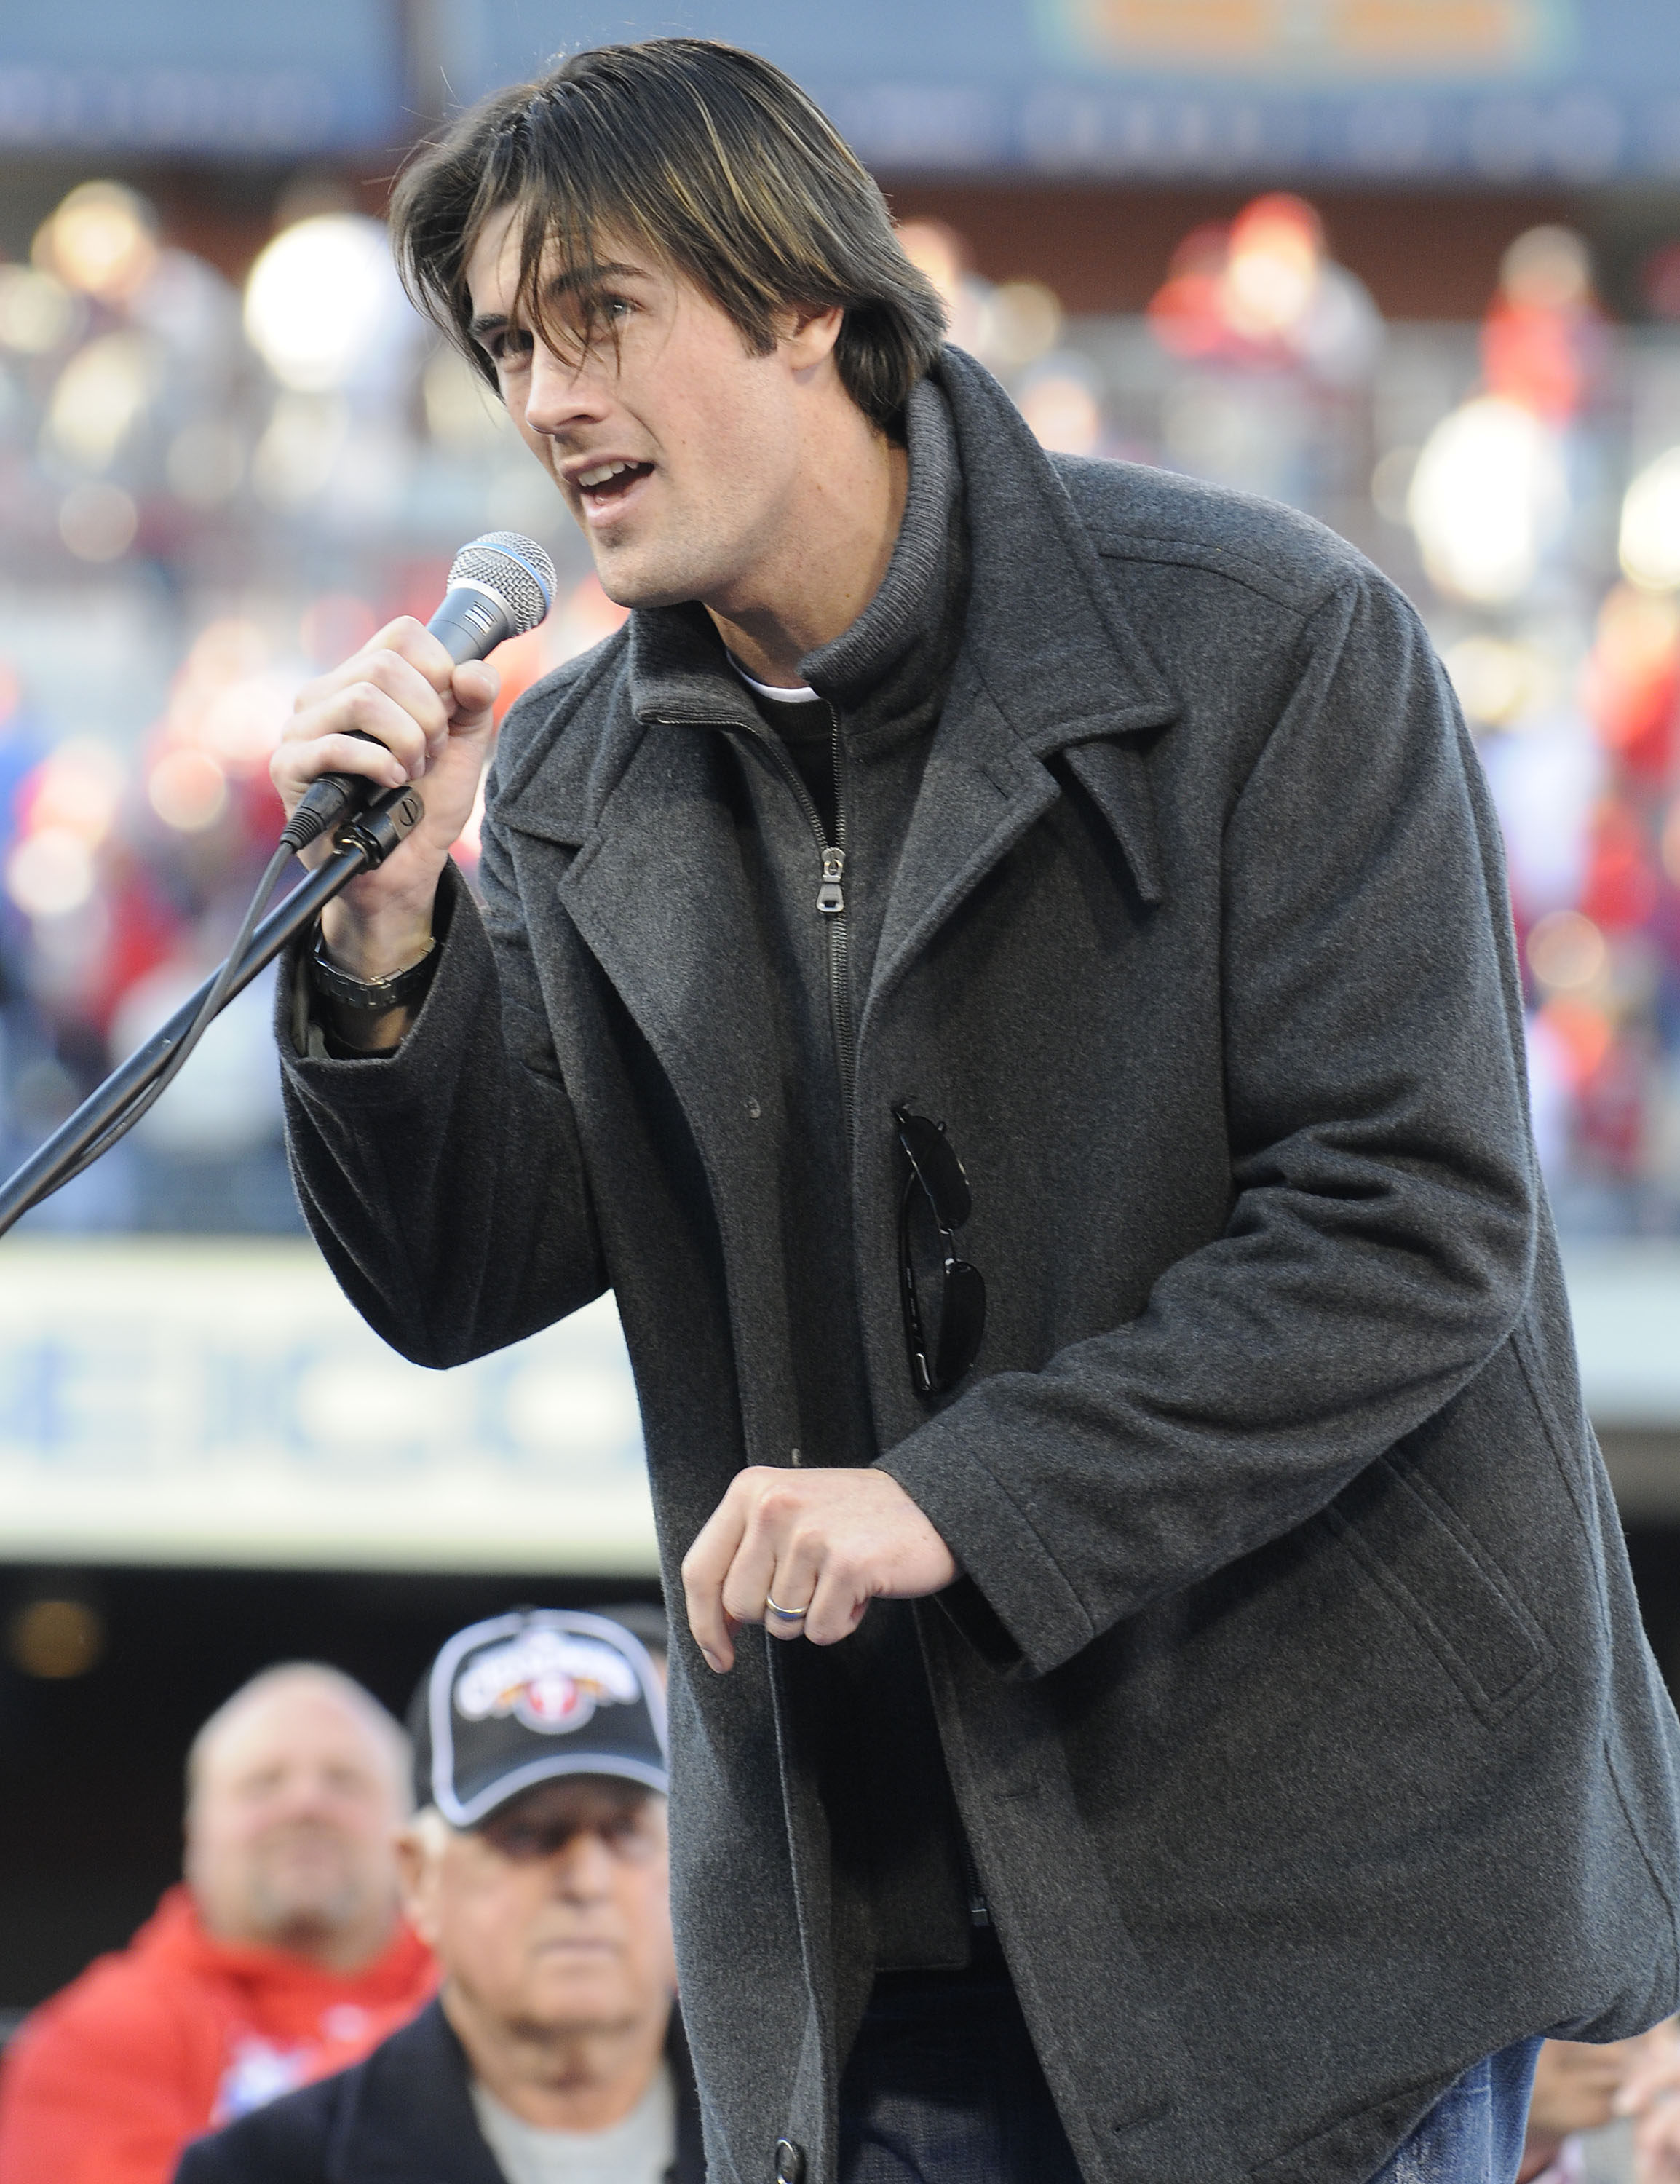 PHILADELPHIA, PA - OCTOBER 31: Philadelphia Phillies Cole Hamels  speaks at a victory rally at Citizens Bank Park October 31, 2008 in Philadelphia, Pennsylvania. The Phillies defeated the Tampa Bay  Rays to win their first World Series in 28 years. (Photo